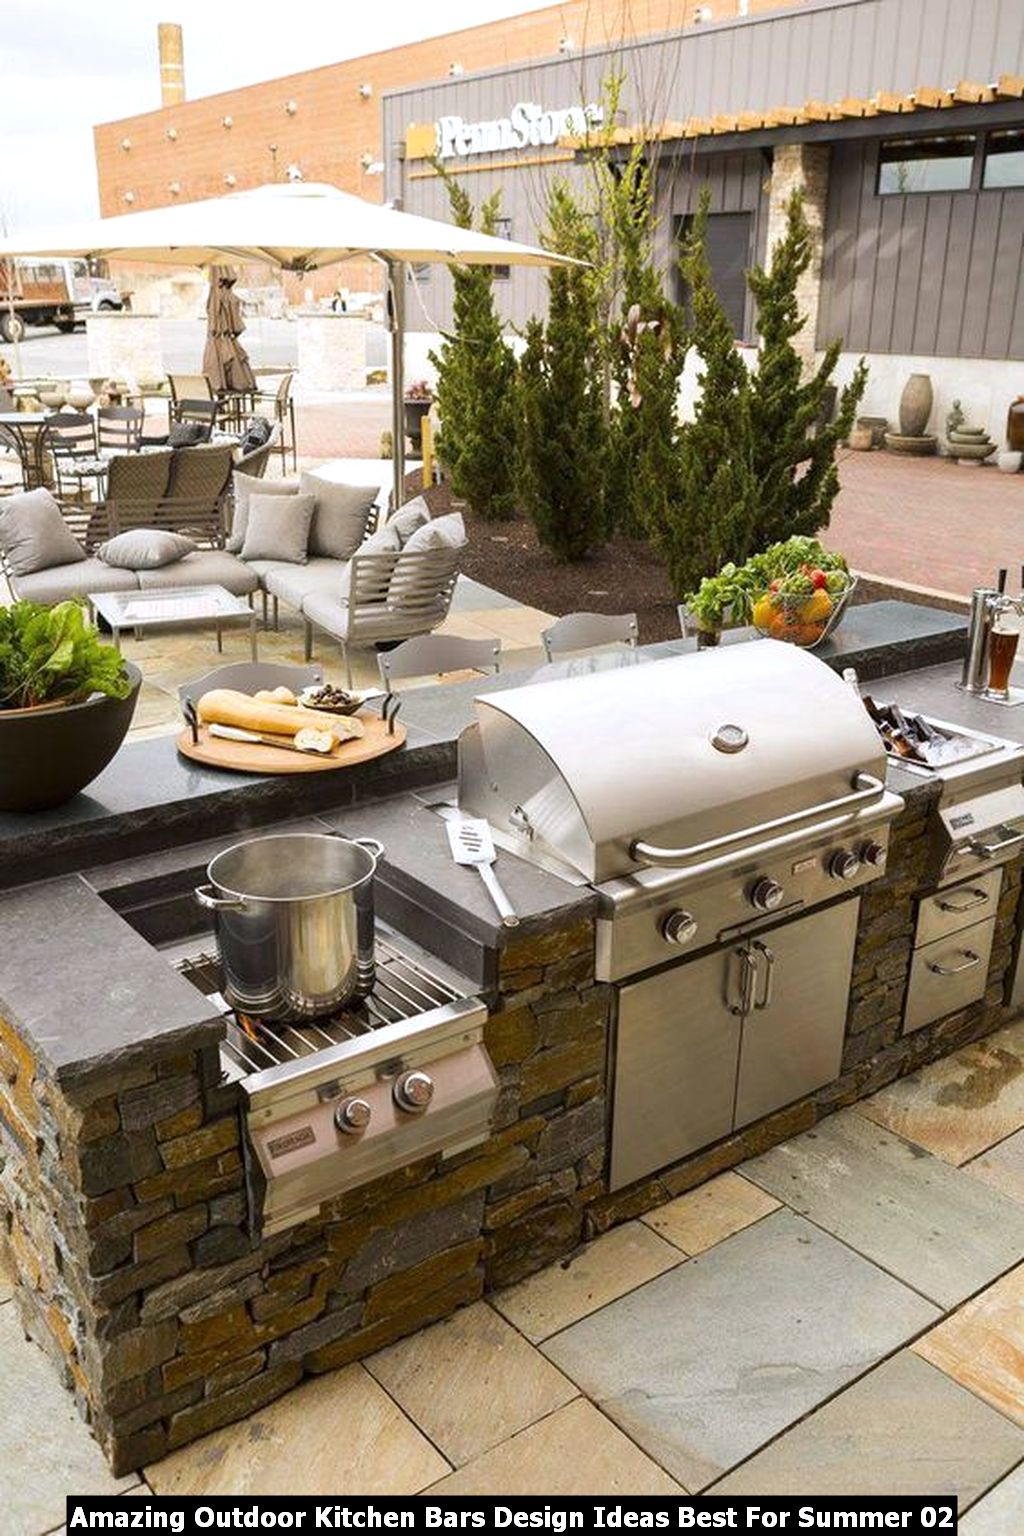 Amazing Outdoor Kitchen Bars Design Ideas Best For Summer 02